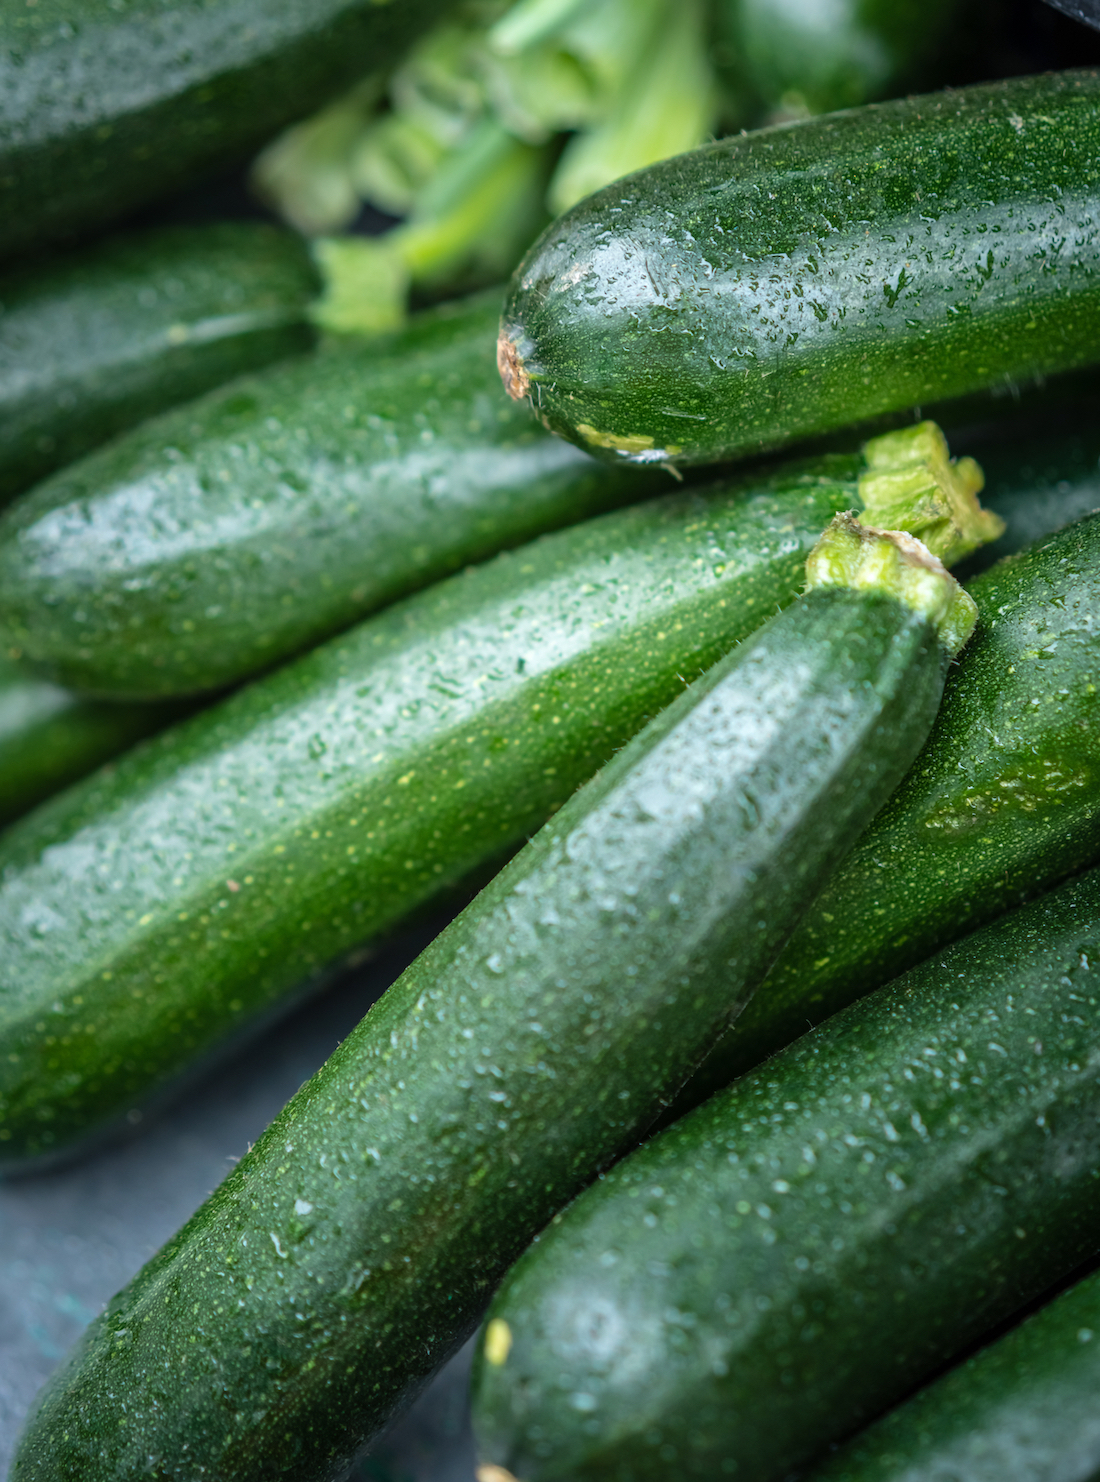 Courgettes ©aaabbbccc shutterstock